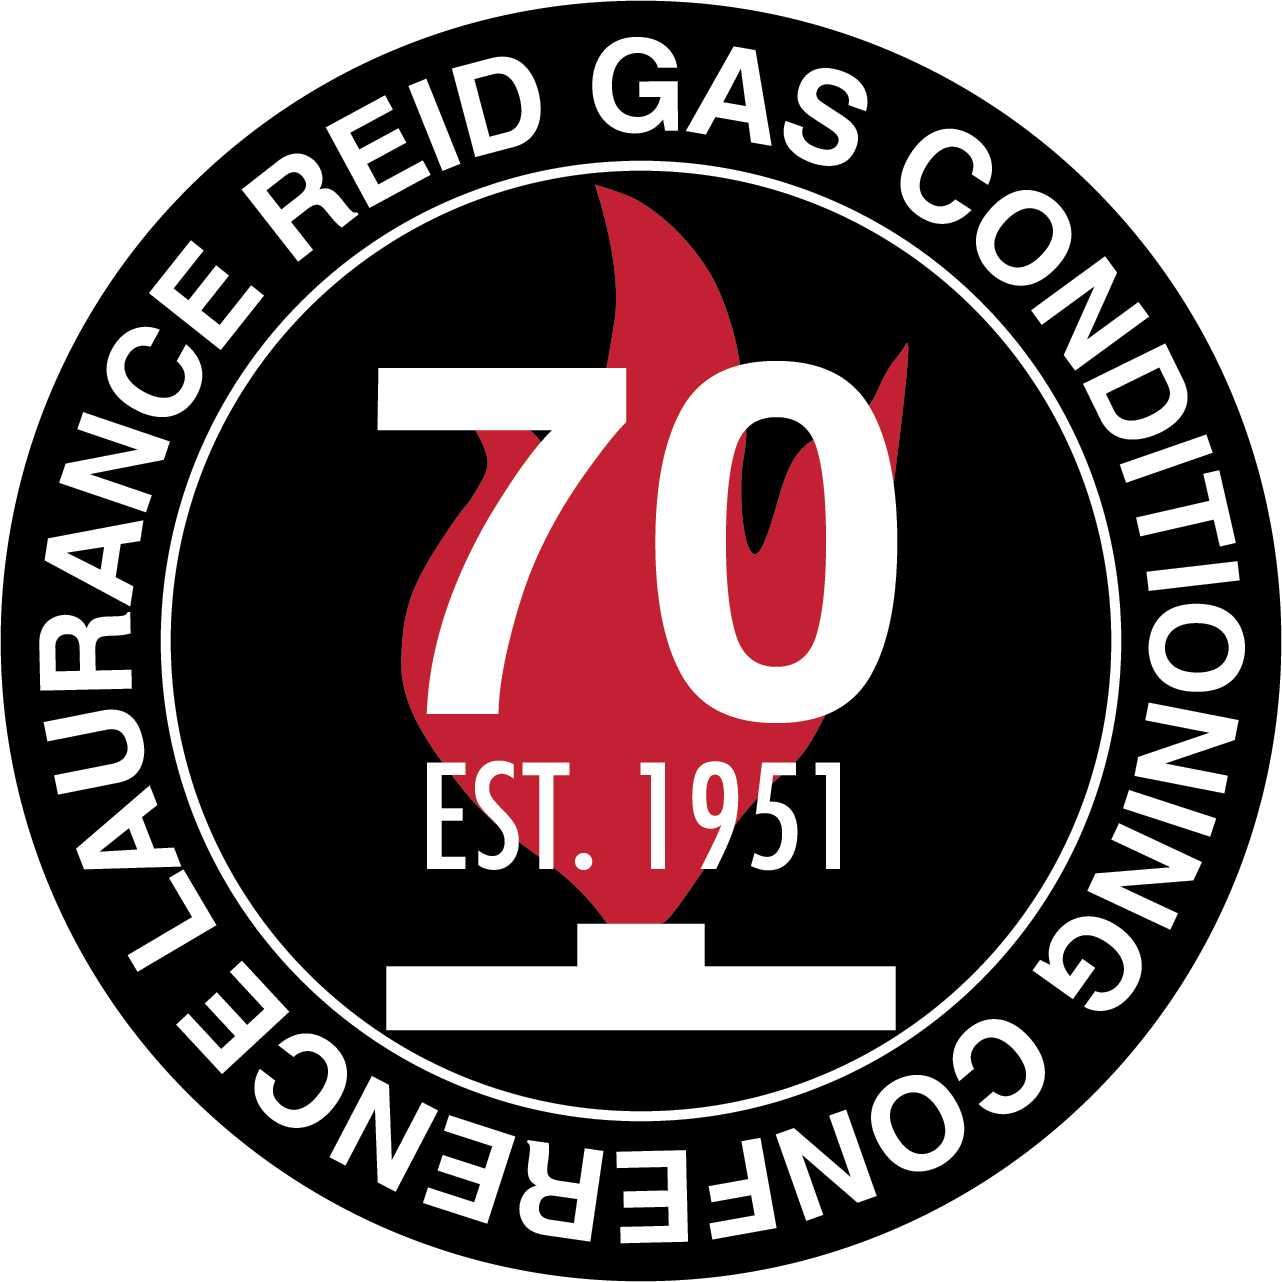 Laurence Reid Gas 70th Conditioning Conference